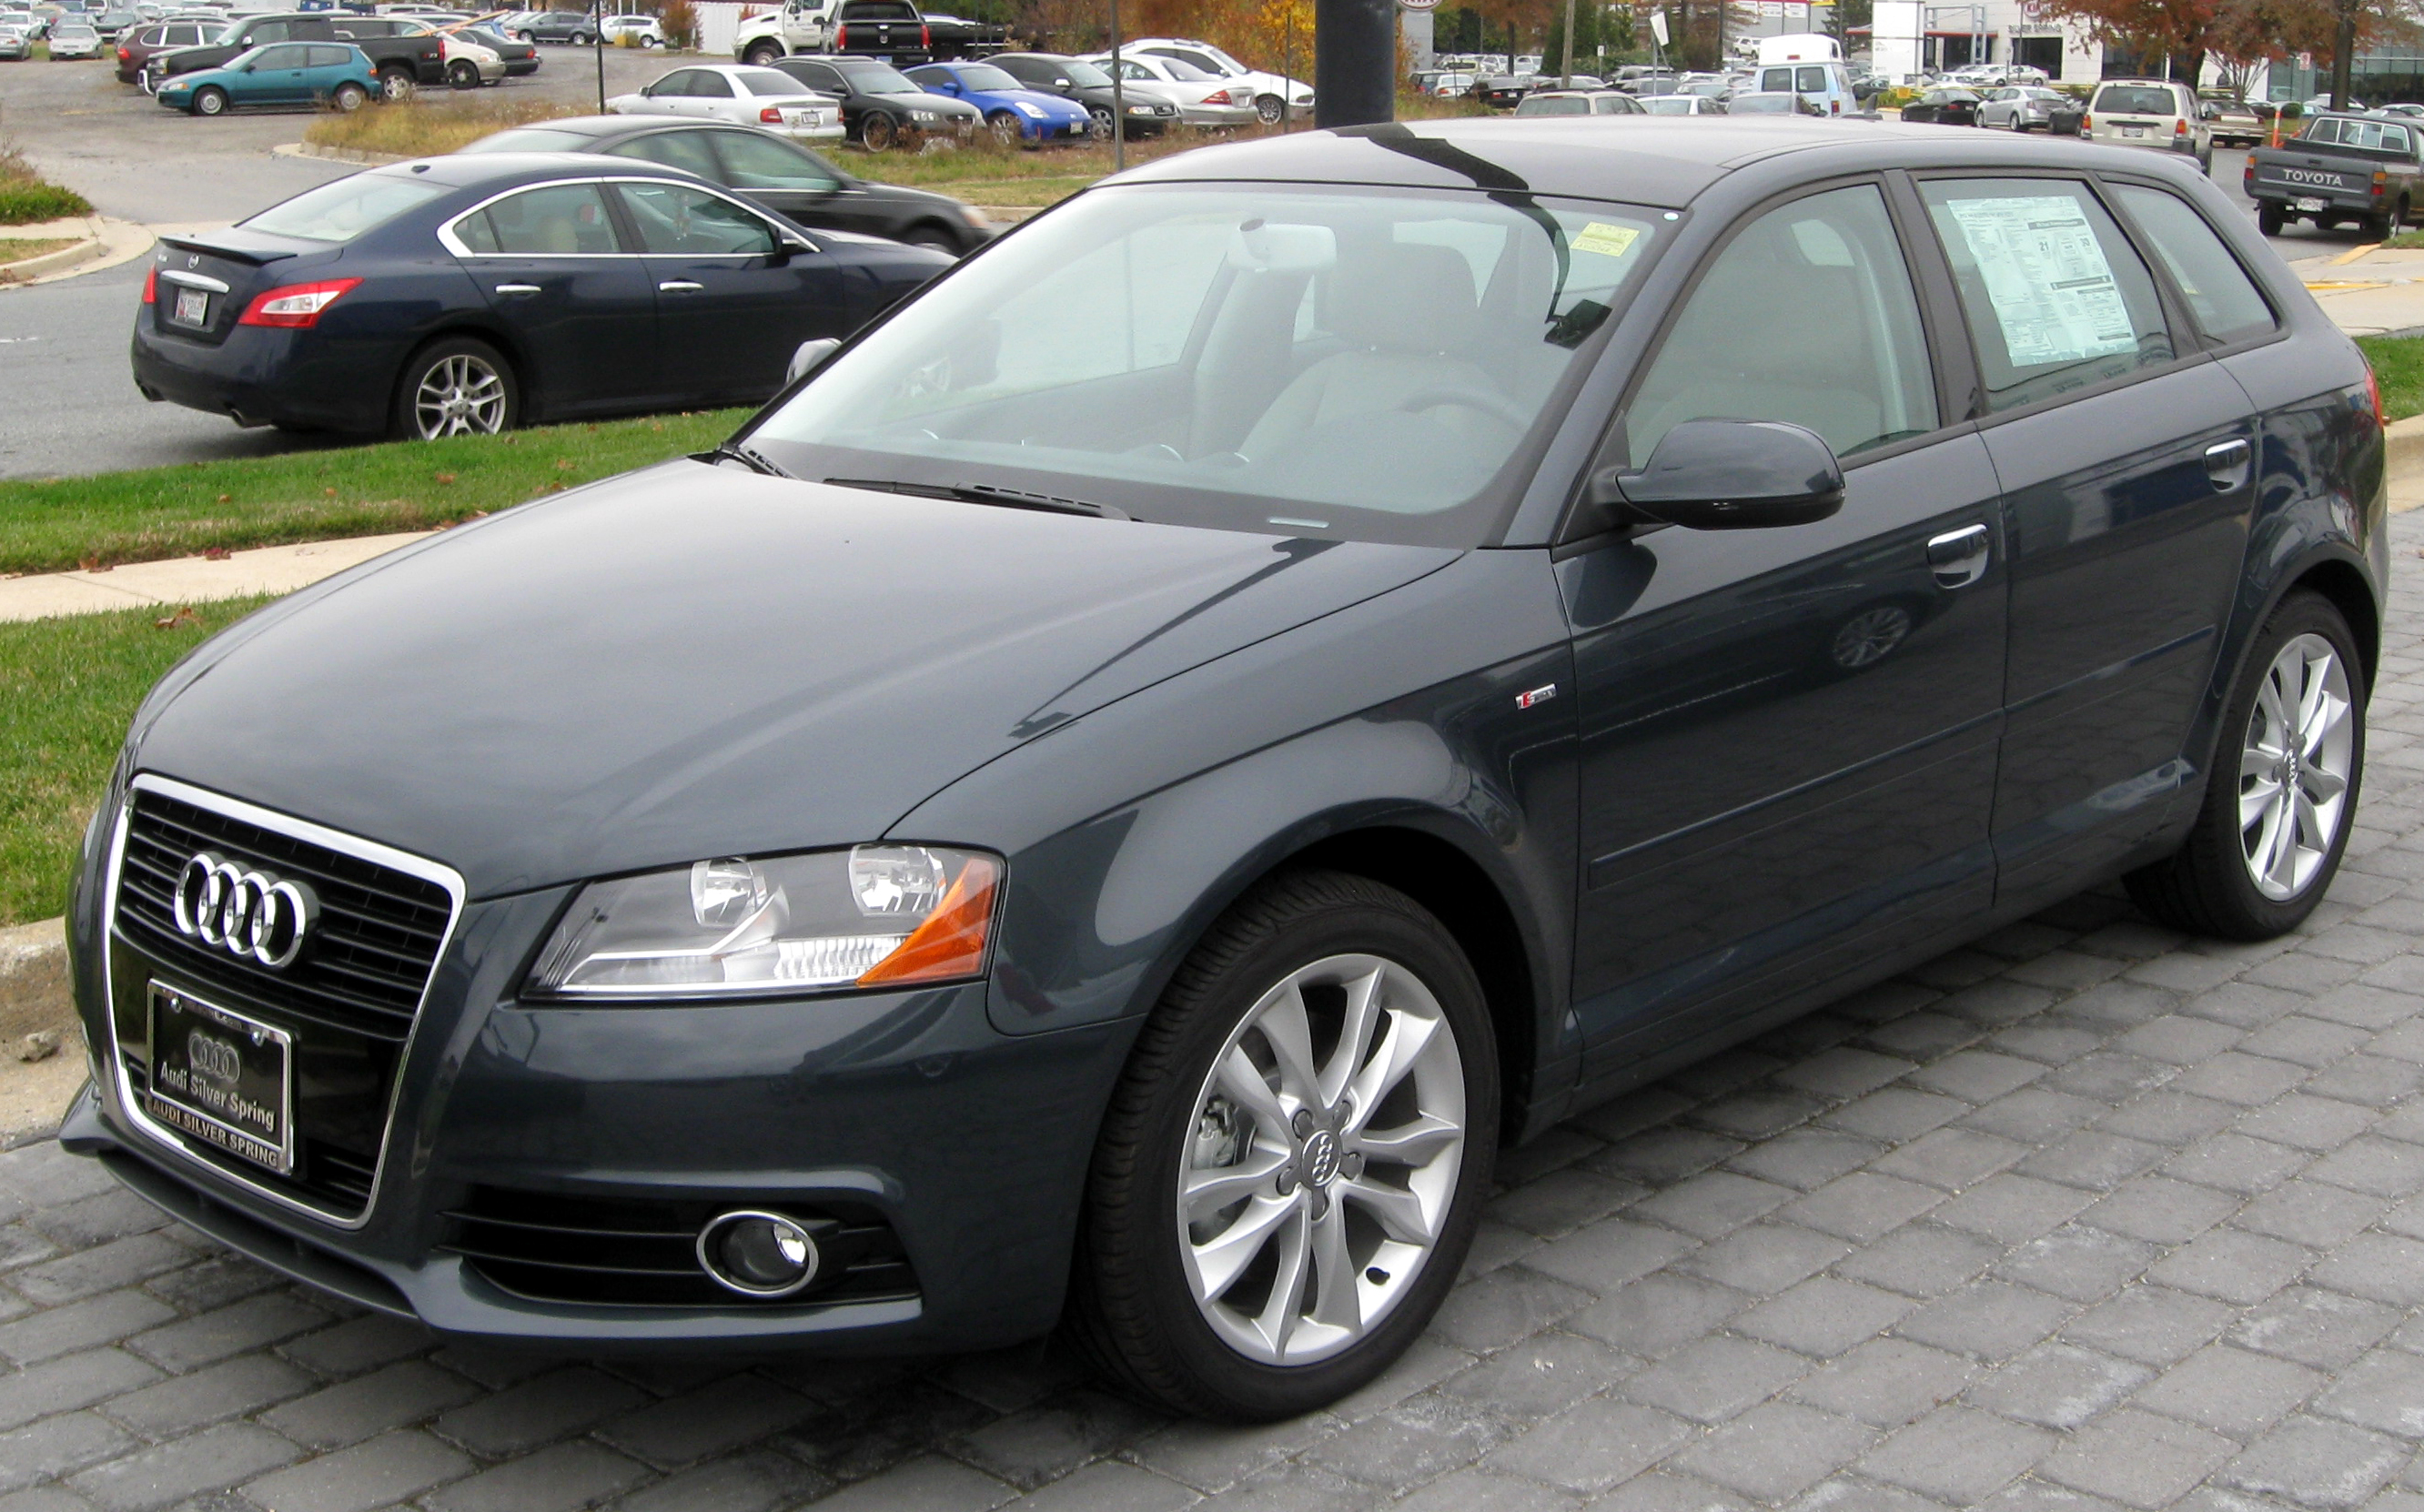 File 2012 Audi A3 11 10 2011 Jpg Wikimedia Commons